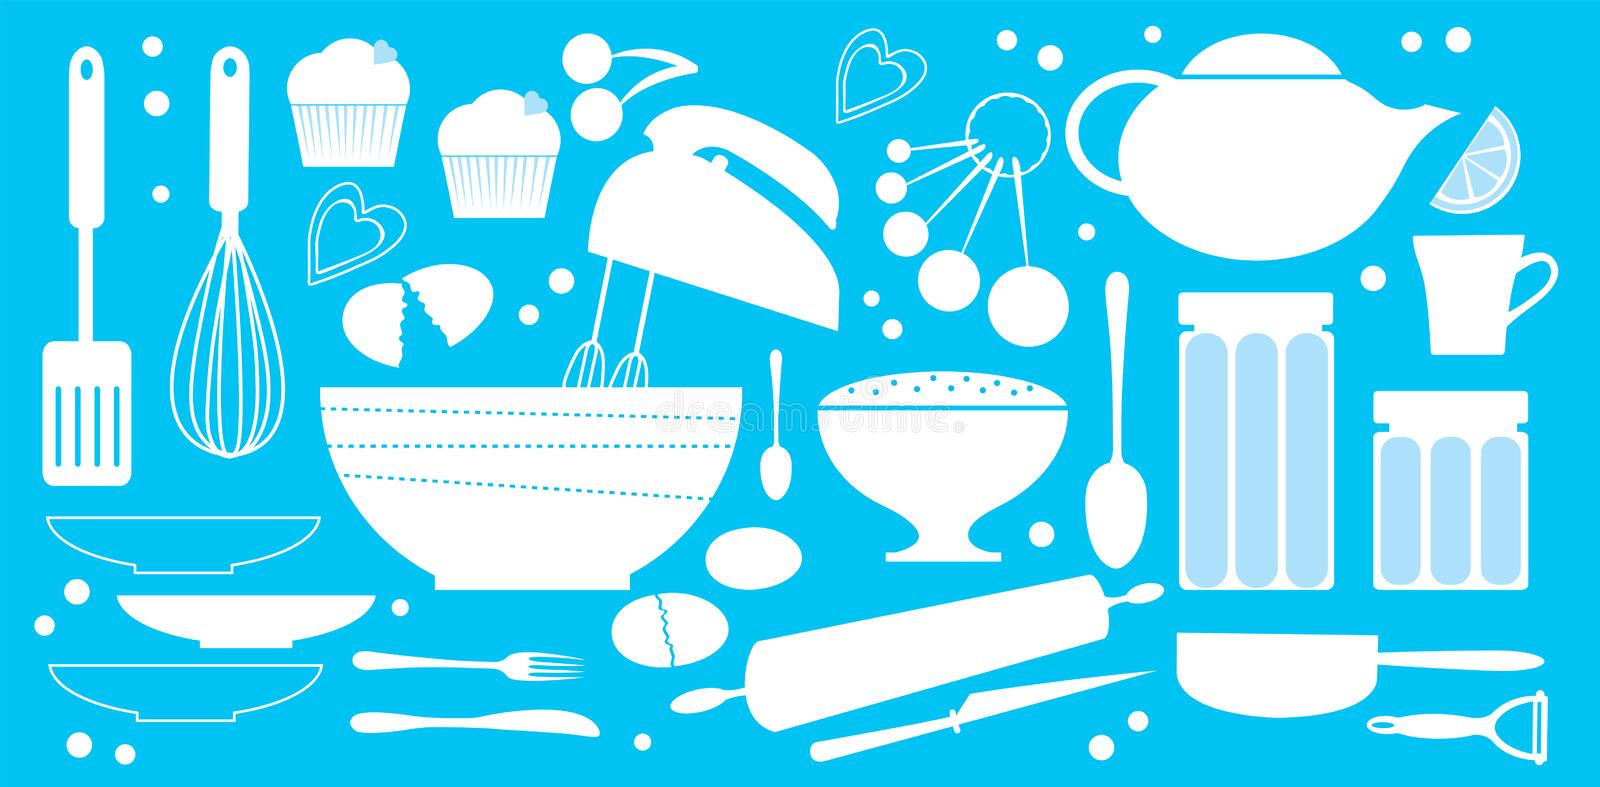 Bakery set. A cute collection of baking equipment and products stock illustration